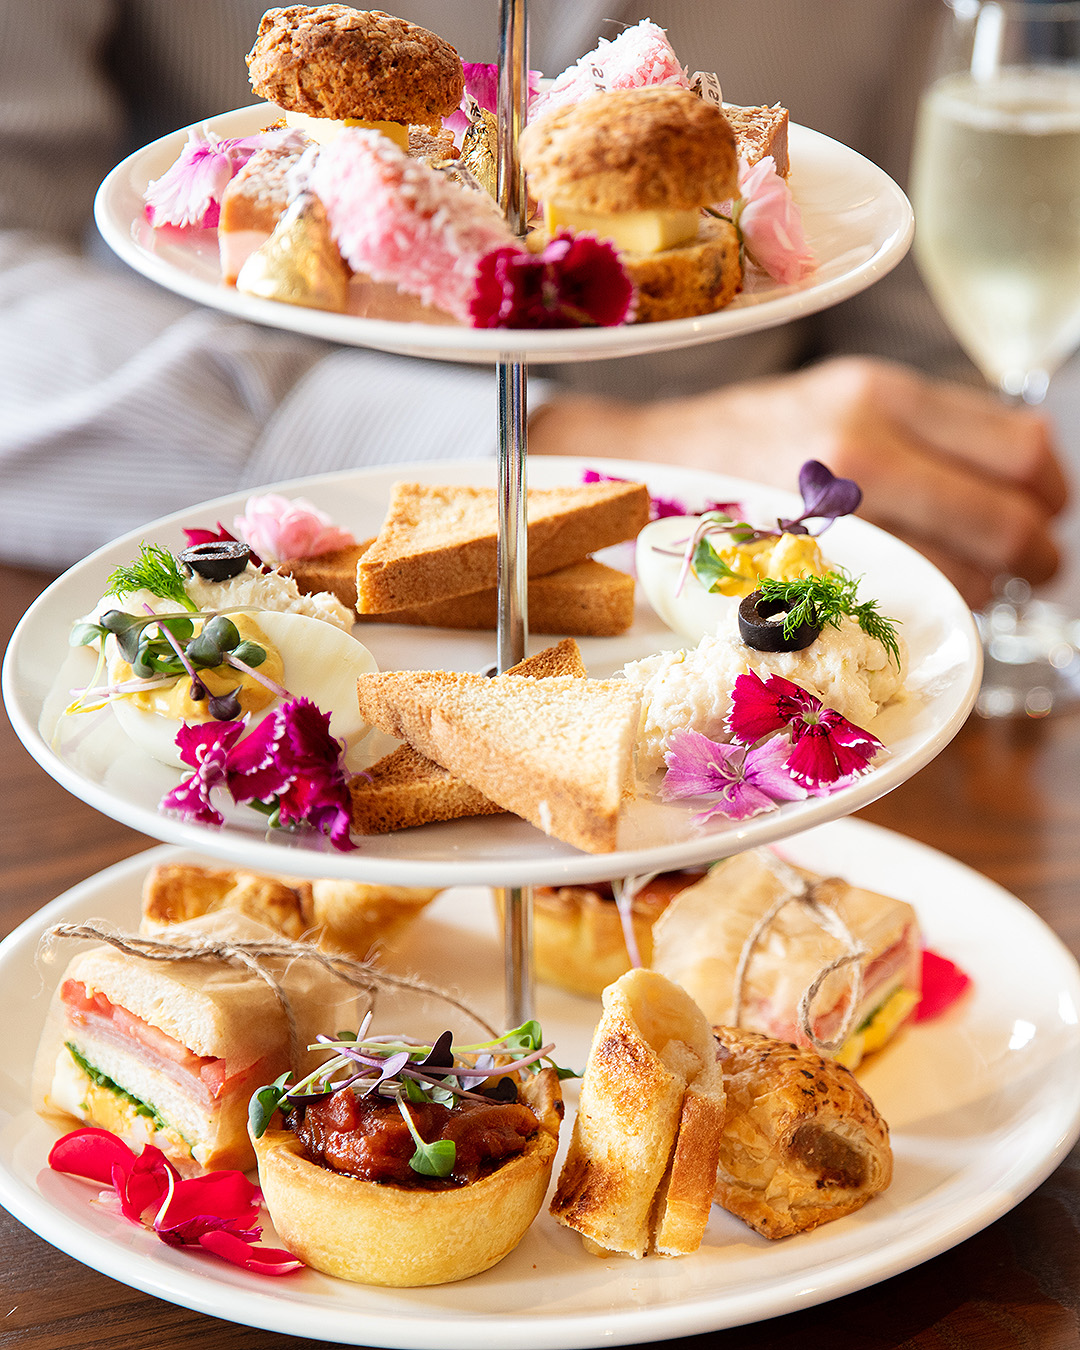 The New Zealand-themed high tea at Tuitui museum bistro and cafe.